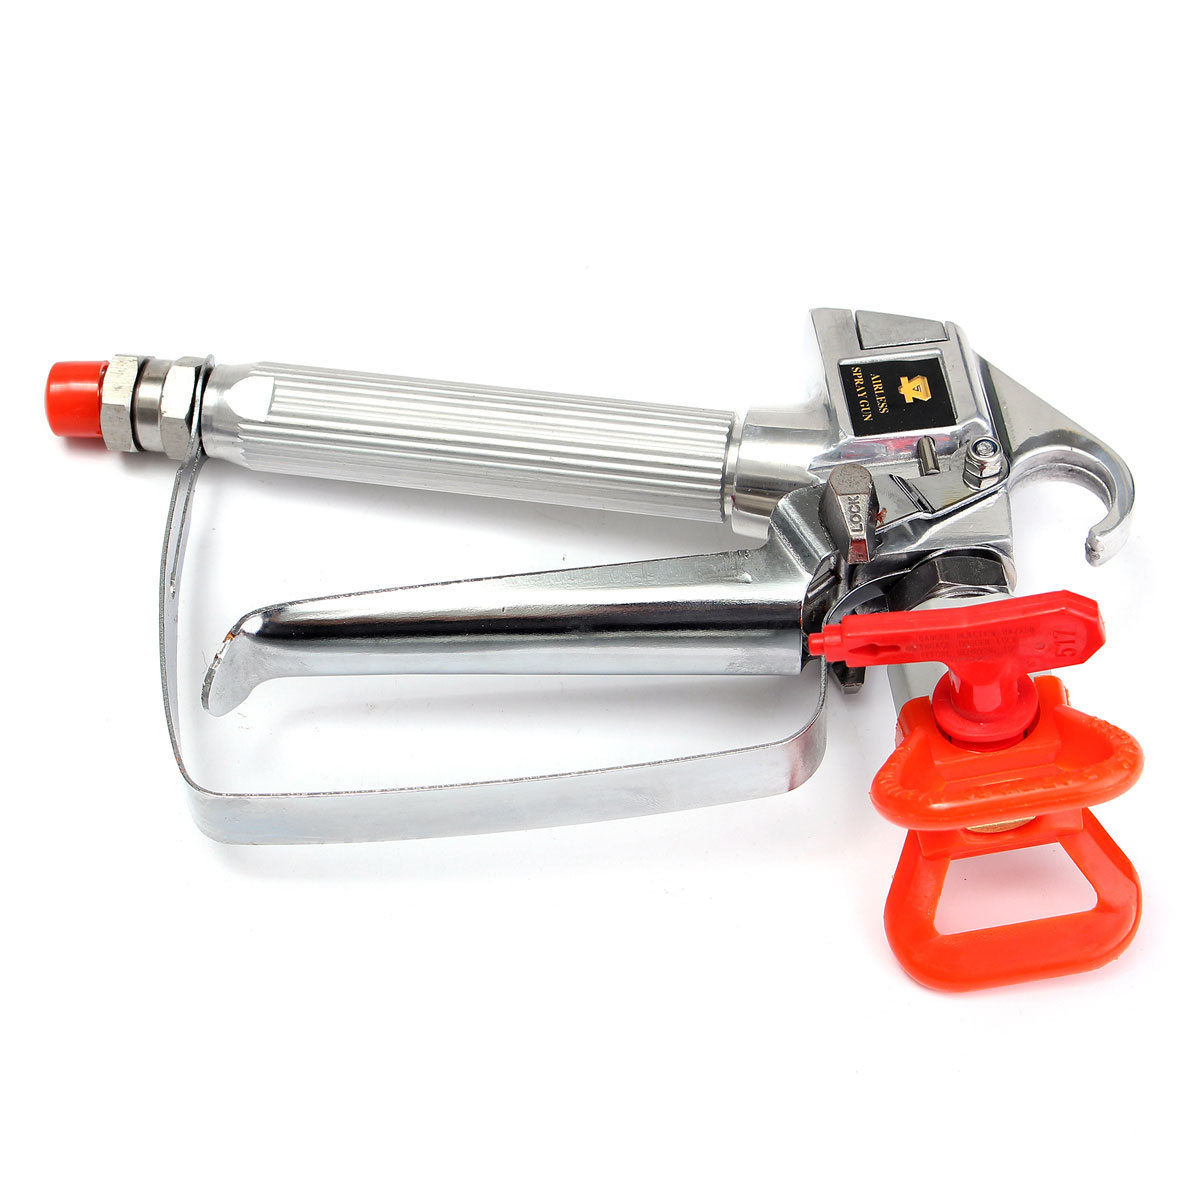 Best Promotion 3600 PSI Airless Spray Gun For Graco TItan Wagner Paint Sprayers With Spray Tip Best Price<br><br>Aliexpress